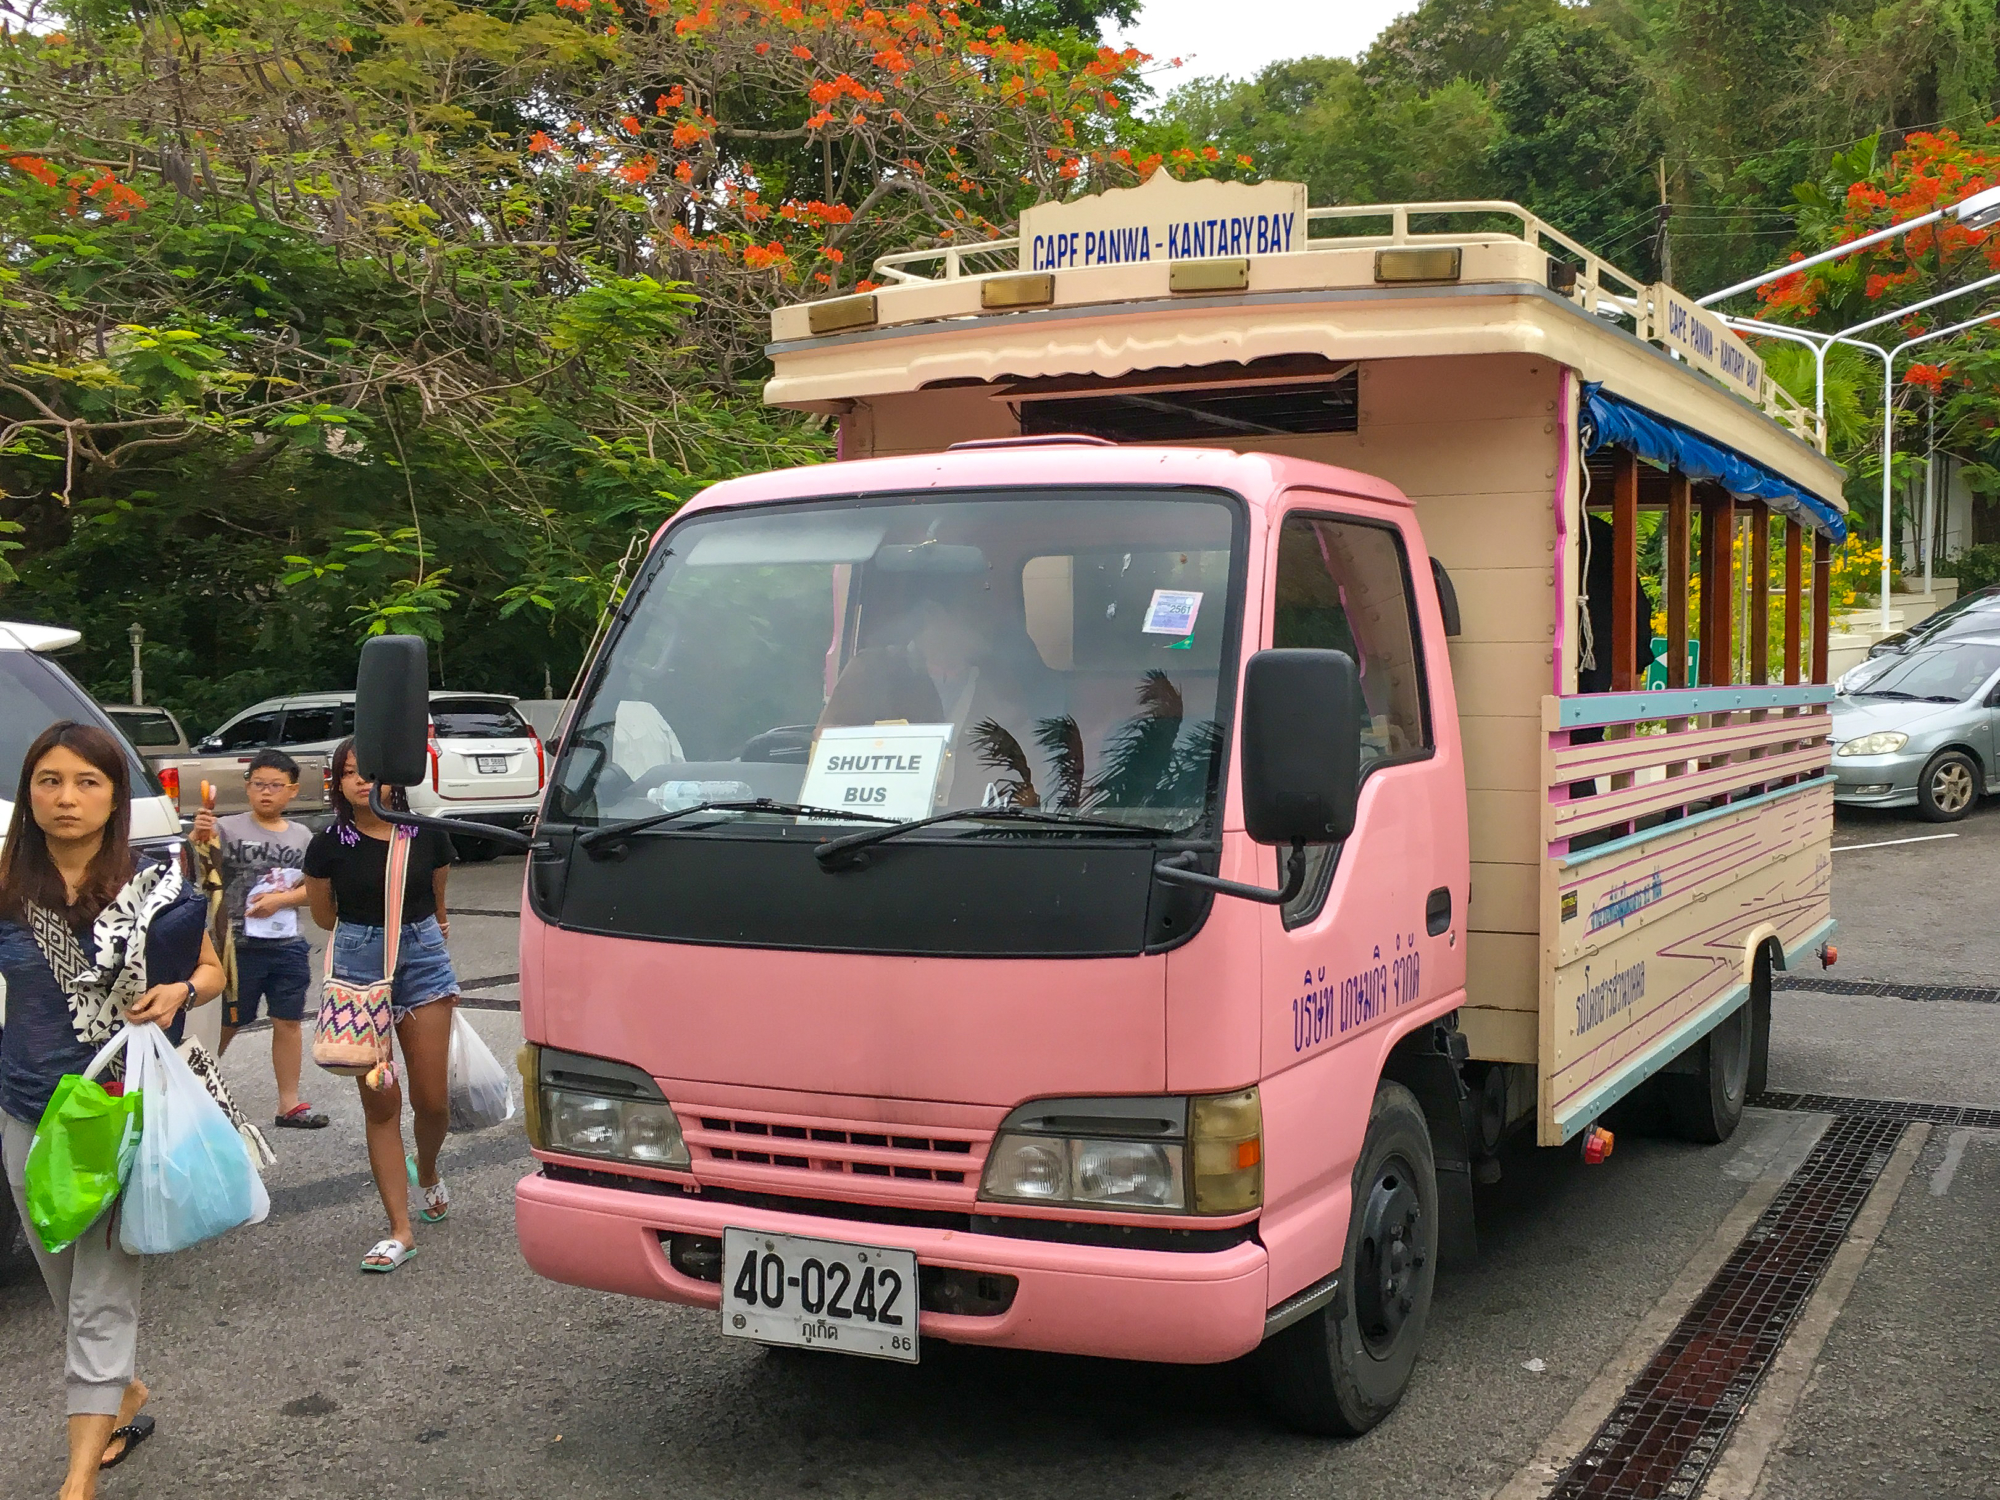 Cape Panwa Hotel to Kantary Bay shuttle bus